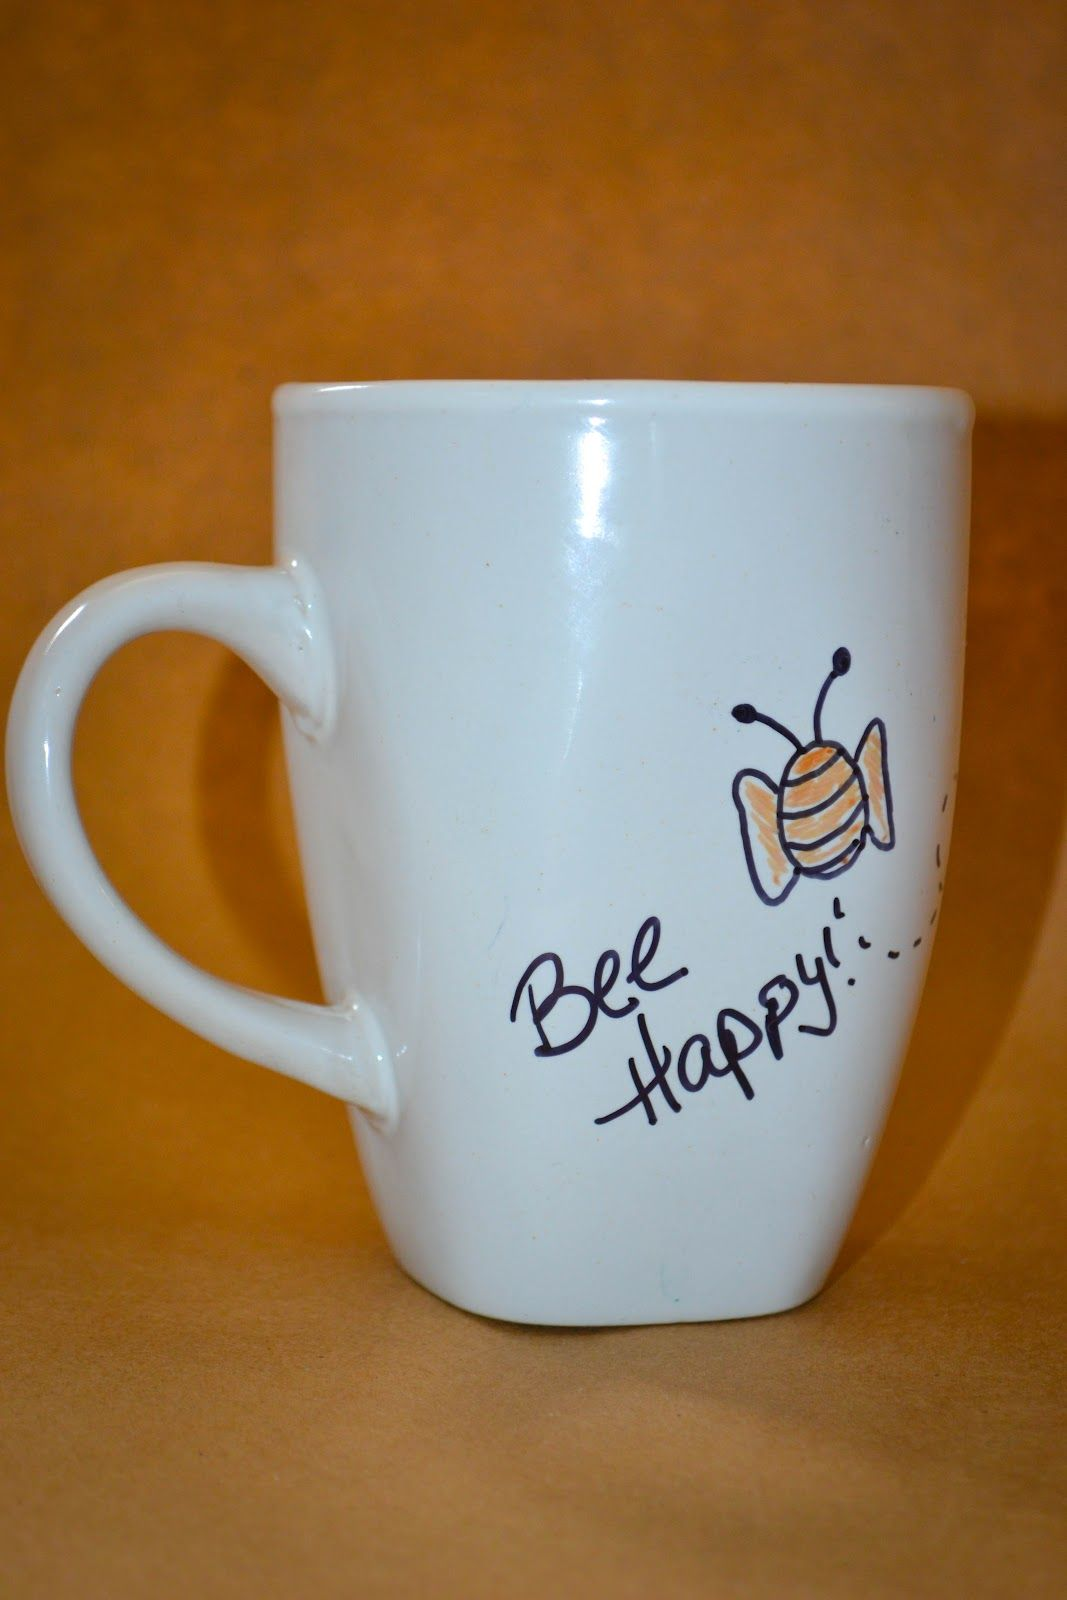 On Pinterest I keep seeing the Sharpie Mug here is a